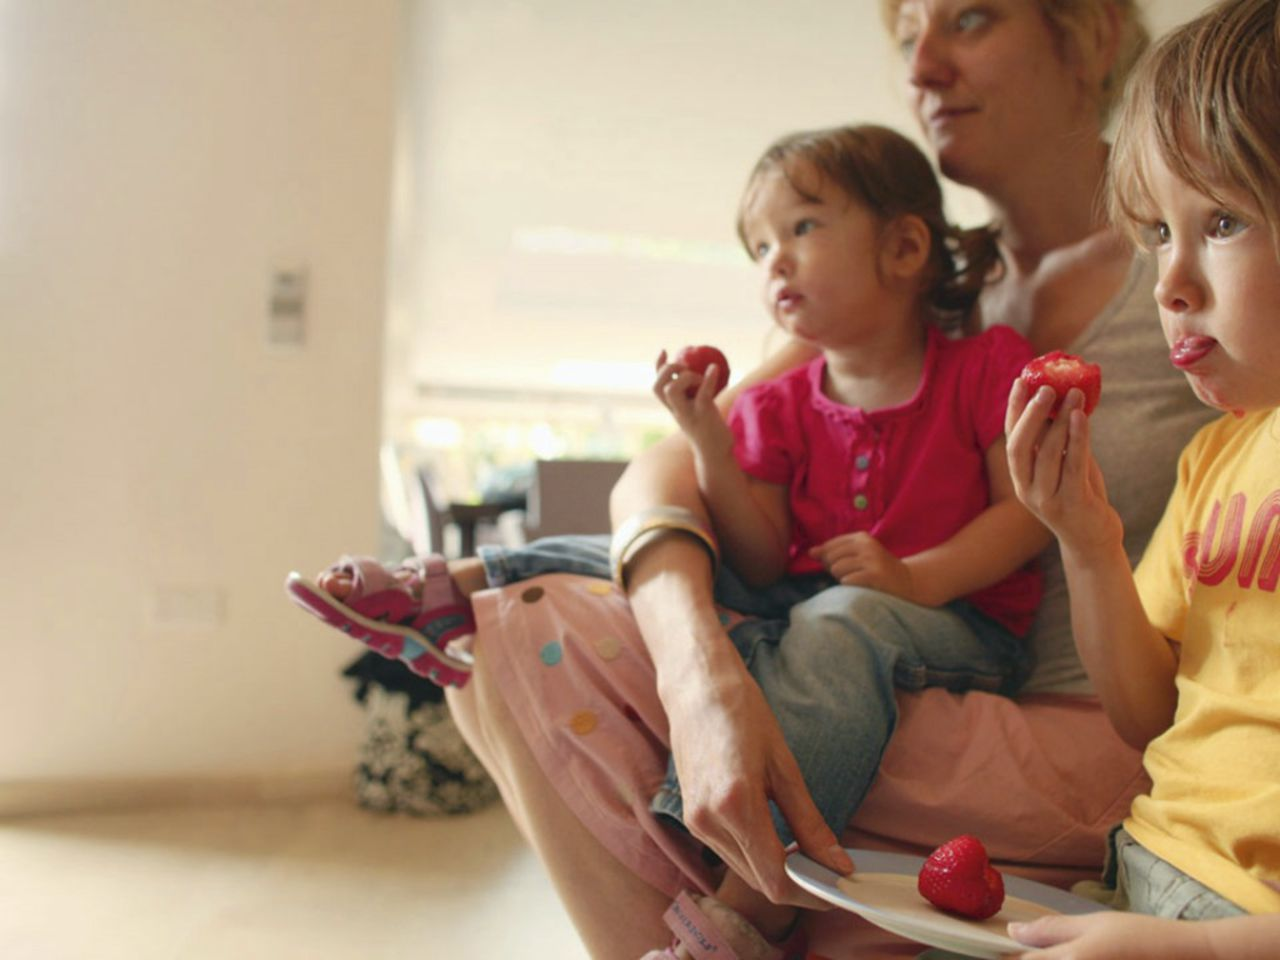 An image showing a family eating strawberries